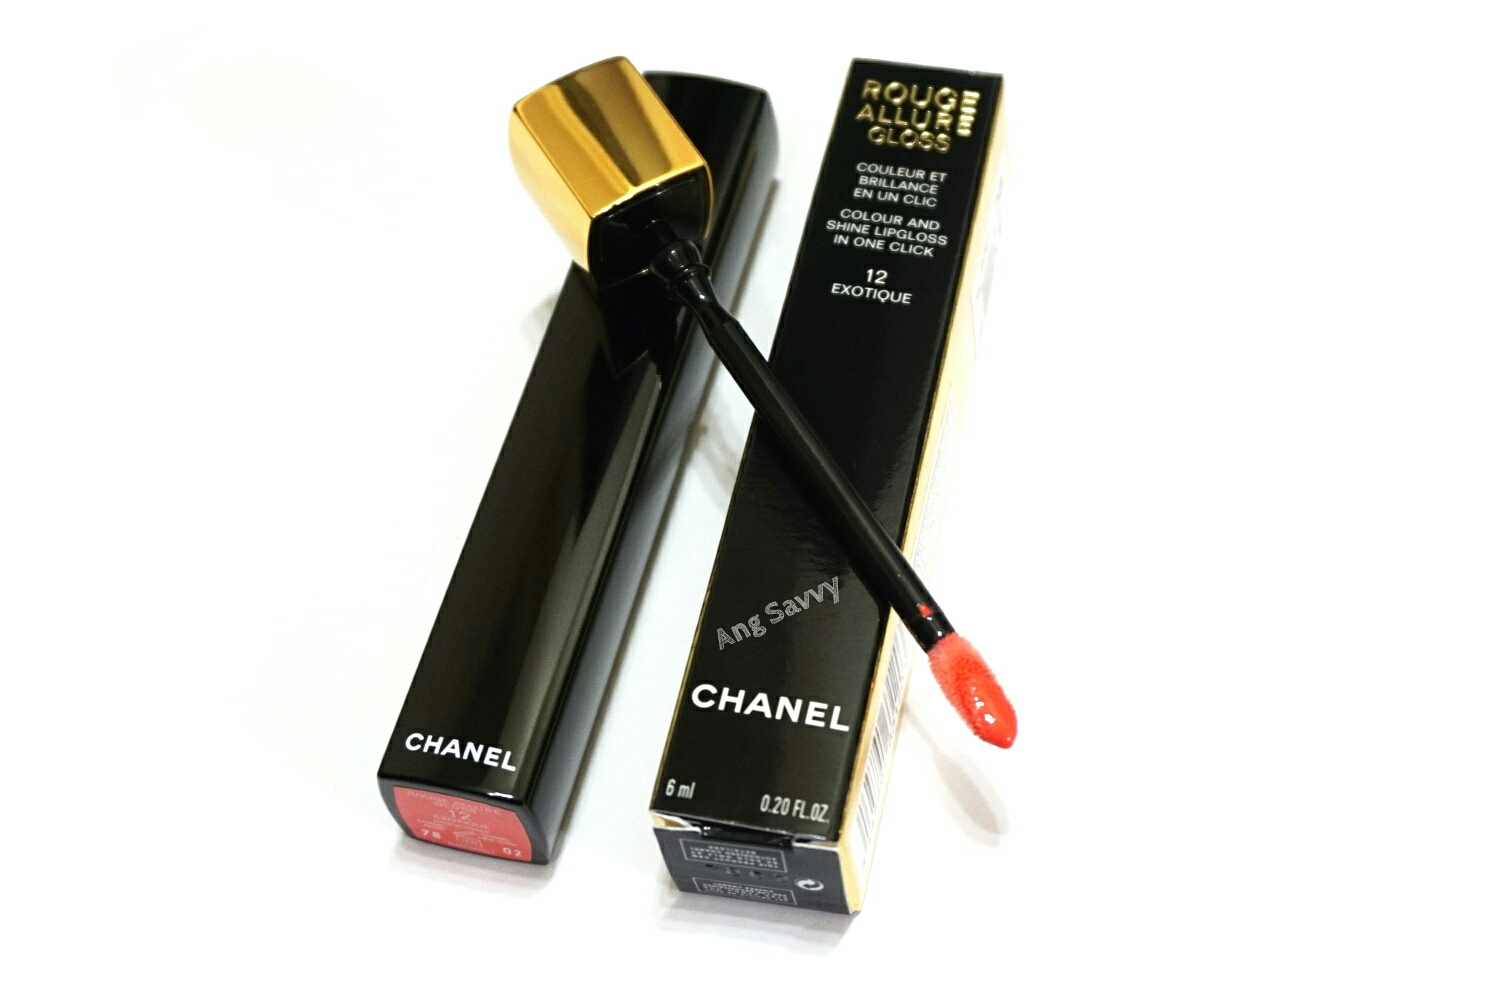 Chanel Rouge Allure Gloss in 12 Exotique